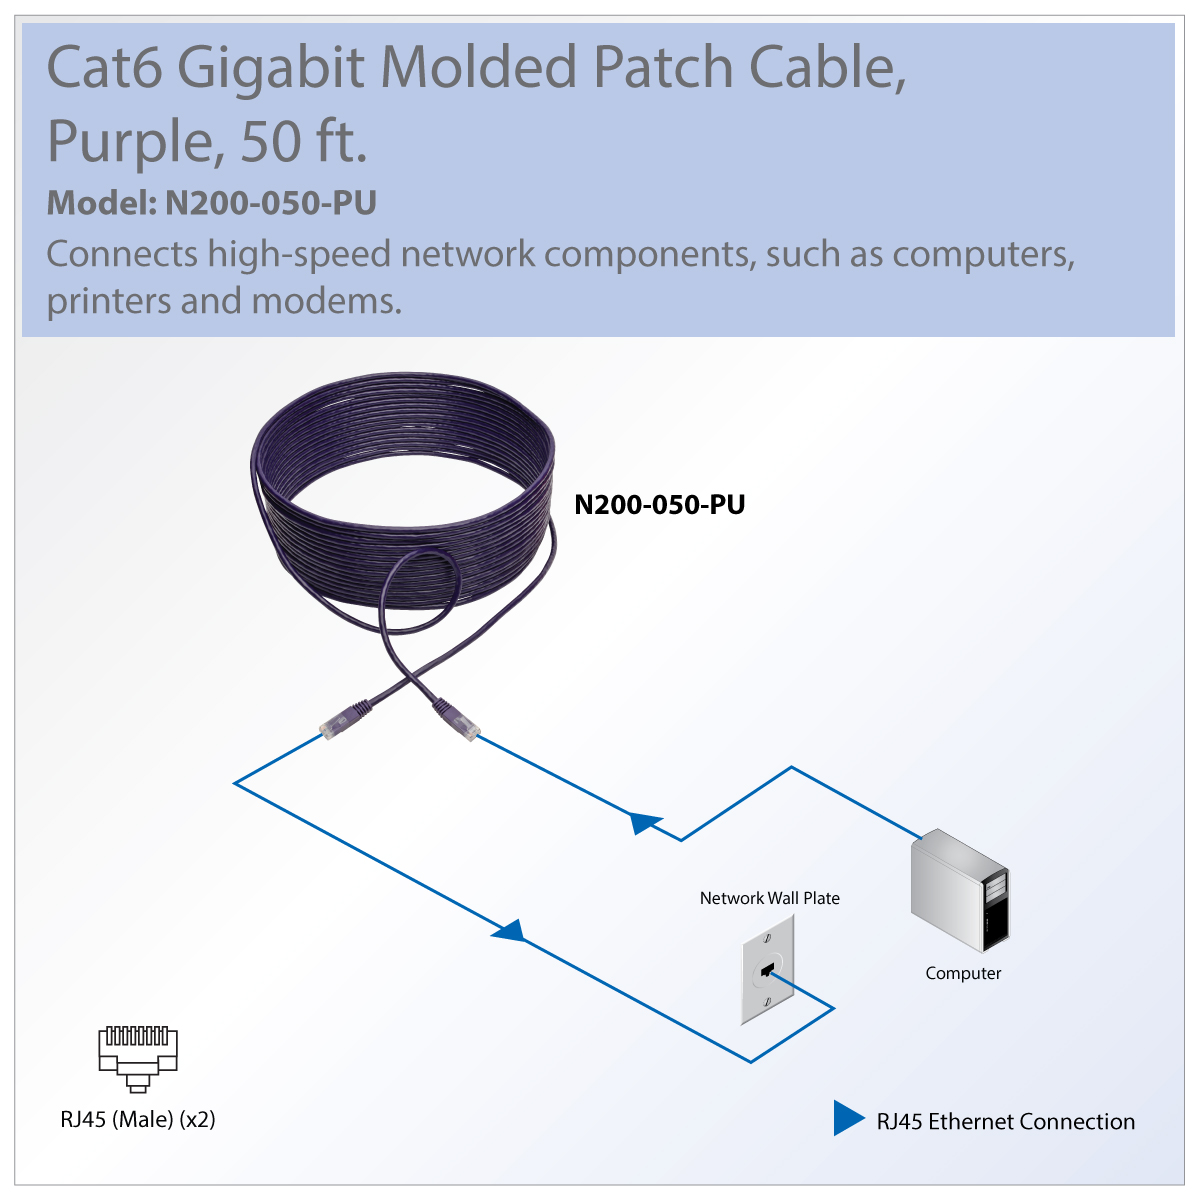 Tripp Lite Patch Cable Cat6 Utp Molded 152m Purple N200 Home Network And Networking Computing Diagram Great For Connecting Components In Bandwidth Heavy Office Networks